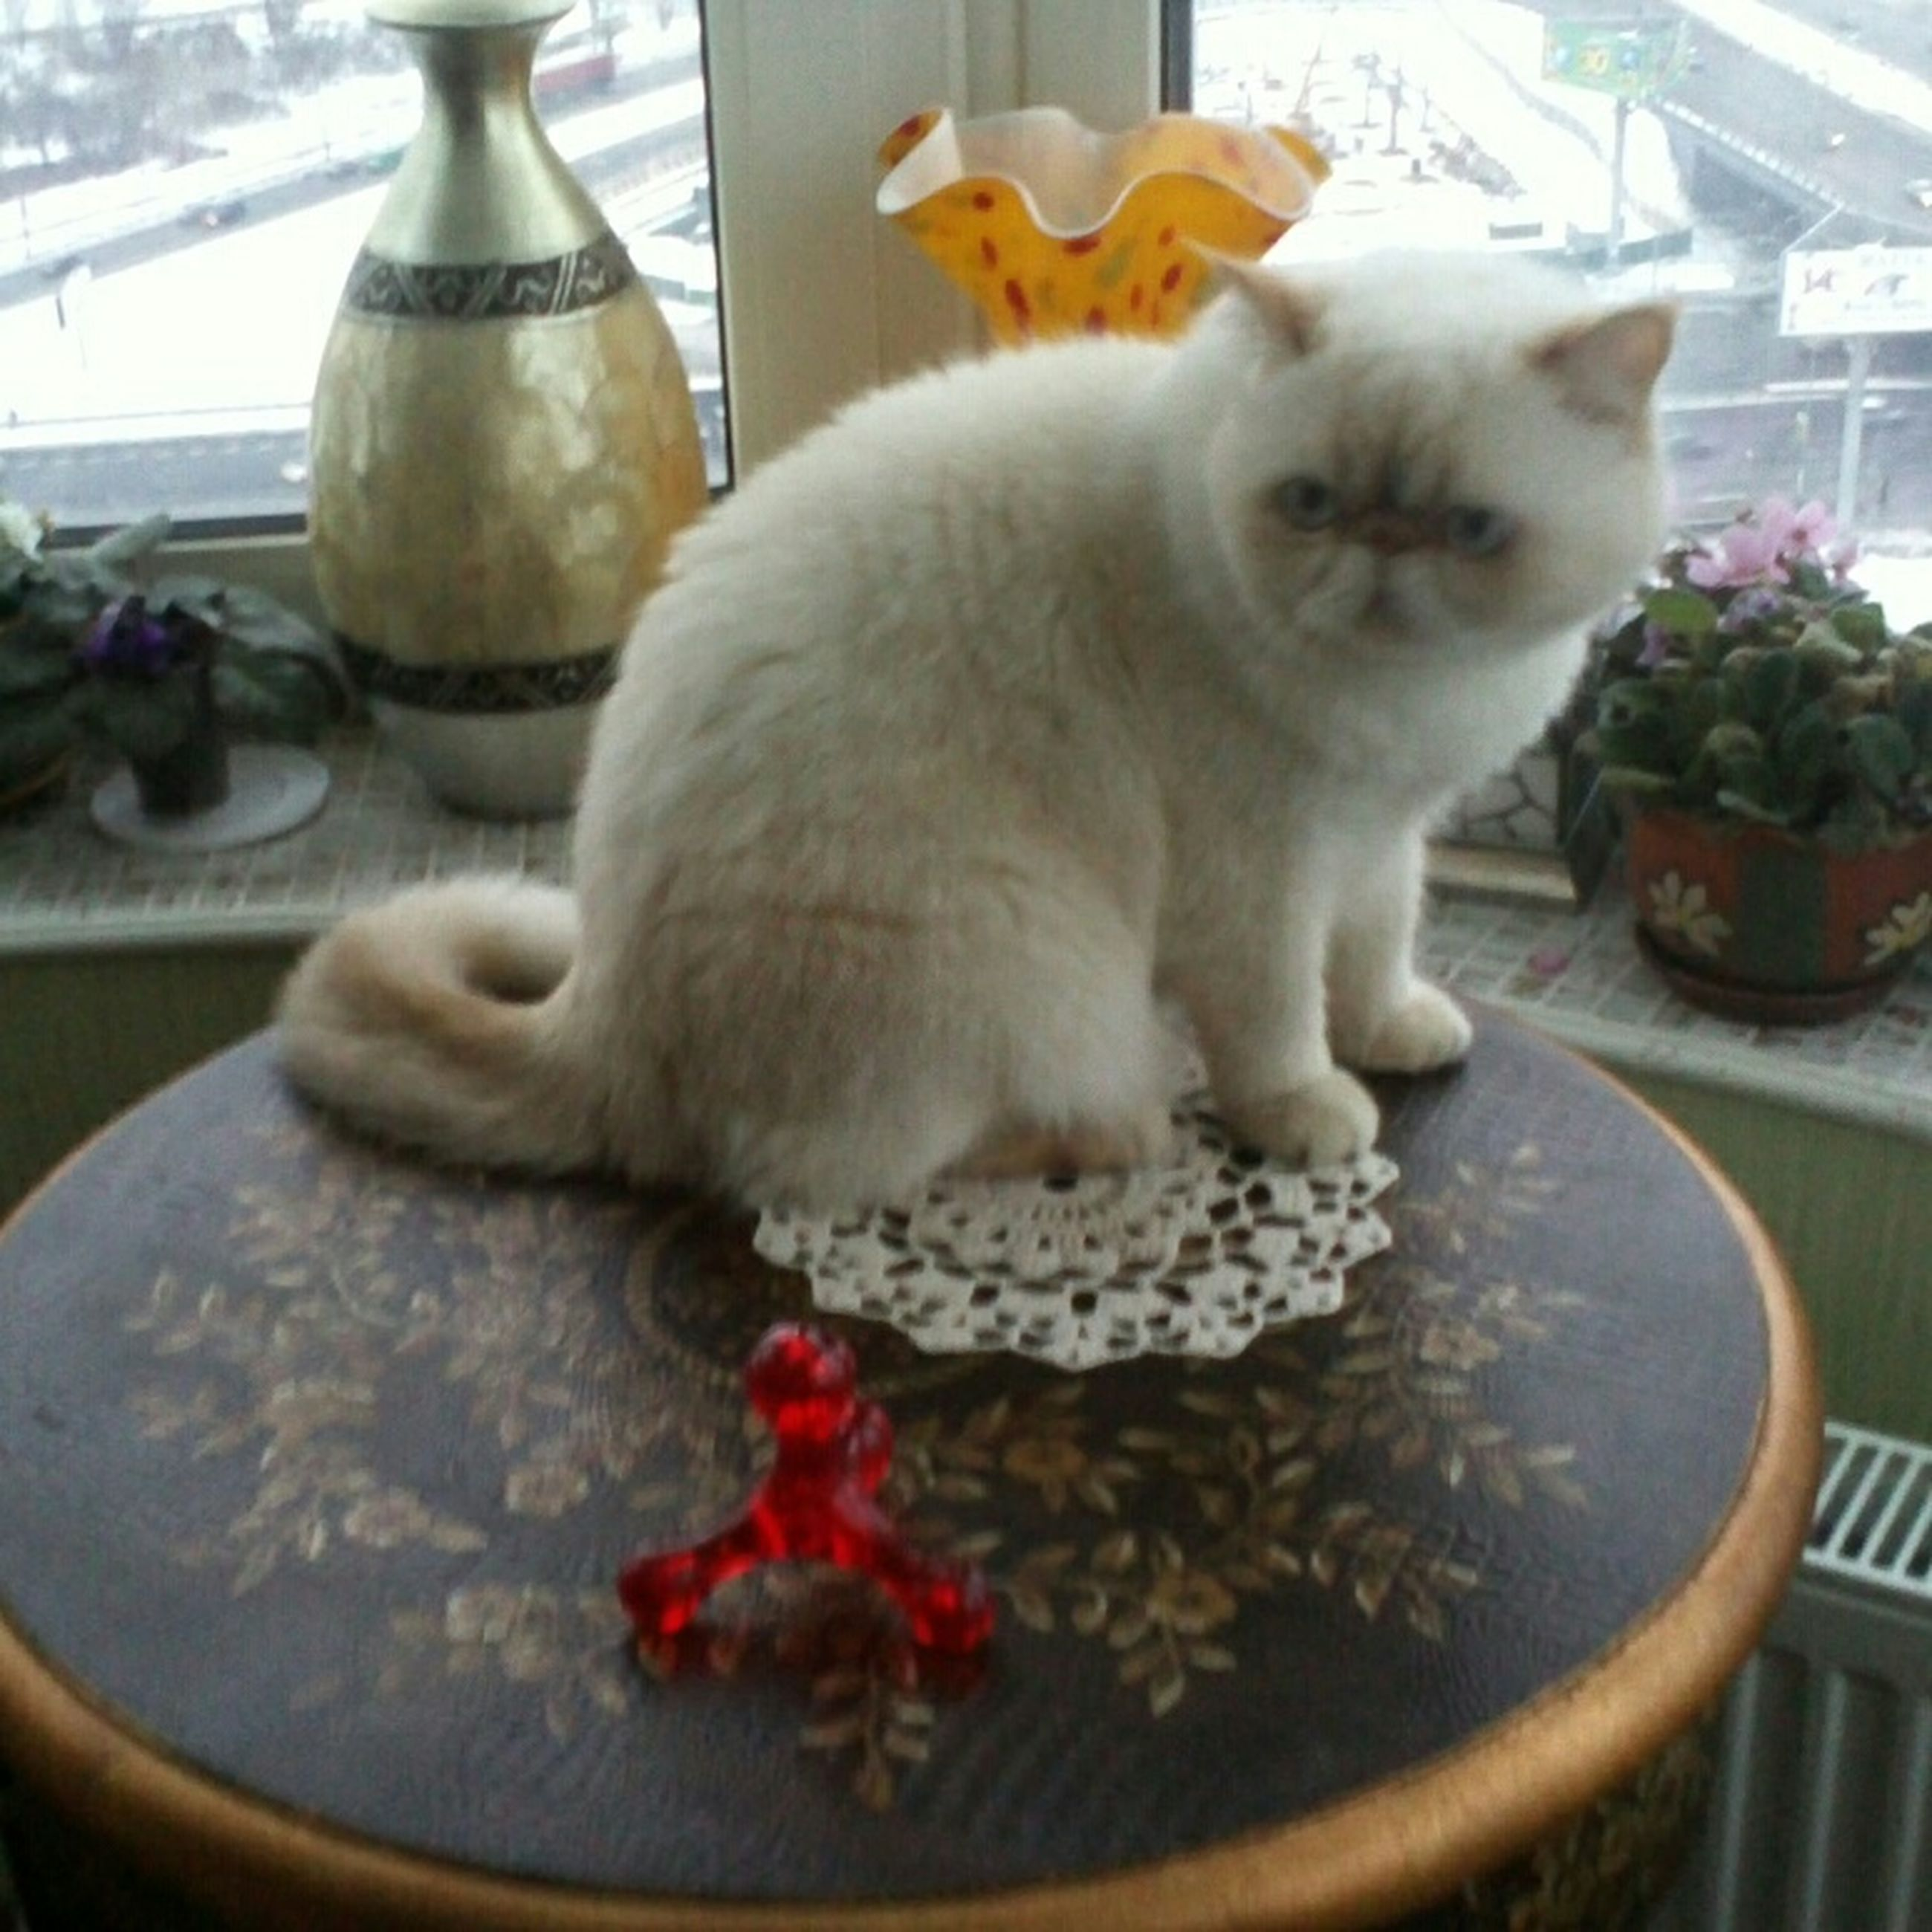 pets, animal themes, domestic animals, domestic cat, one animal, indoors, cat, mammal, feline, whisker, close-up, table, sitting, home interior, relaxation, potted plant, no people, glass - material, looking at camera, portrait